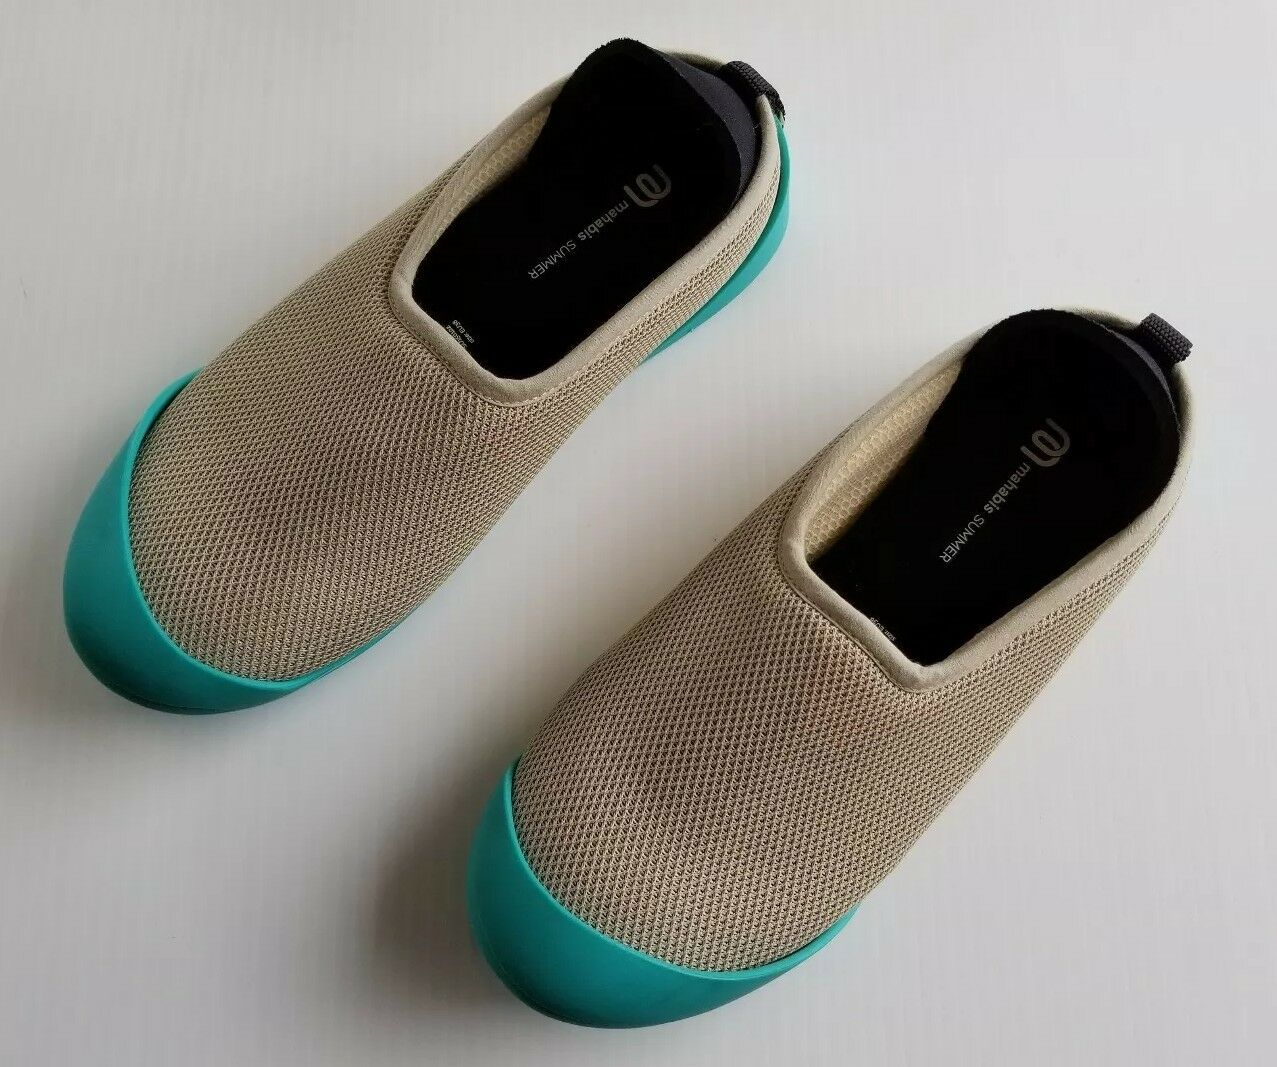 Mahabis Summer Slippers Beige with Teal Rubber Soles Womens 7.5 SU150102